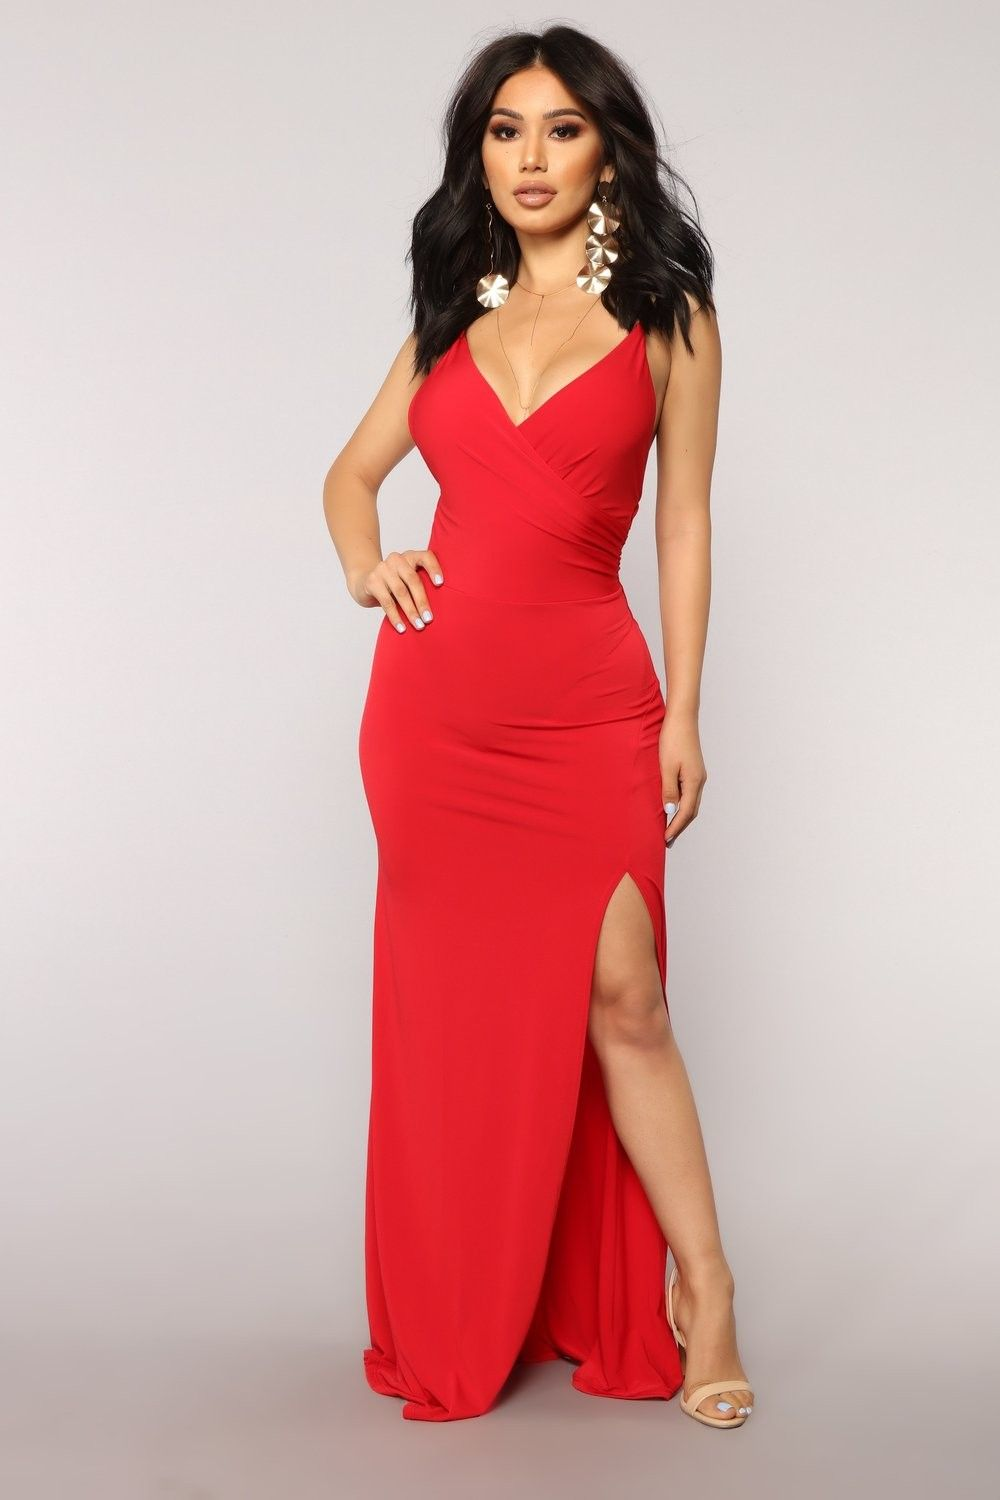 Red Dress Fashion Nova | Polyvore in 2019